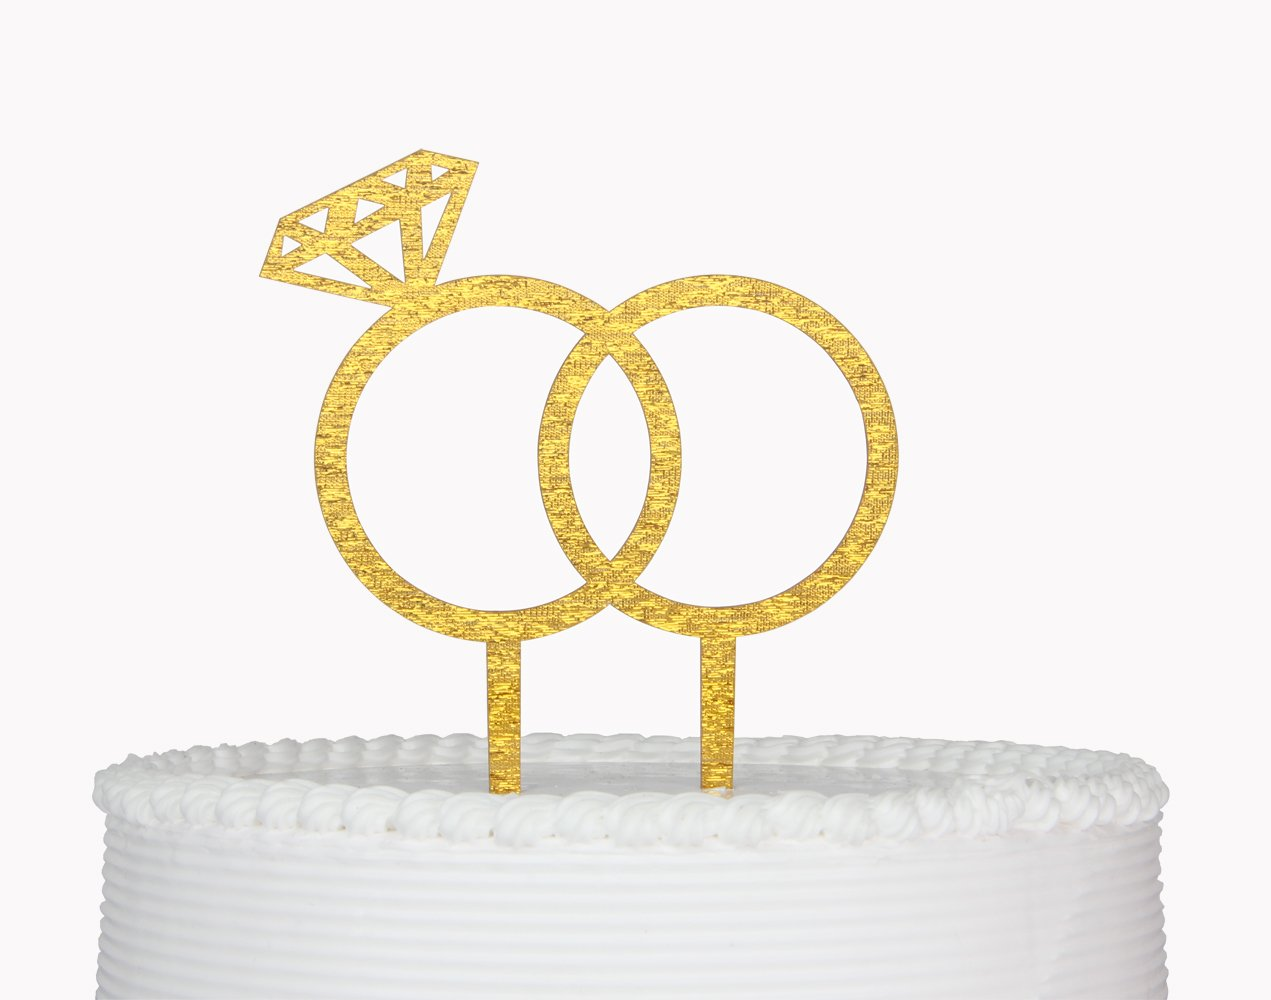 Amazon.com: Diamond Ring Cake Topper, Engagement,Wedding Party ...